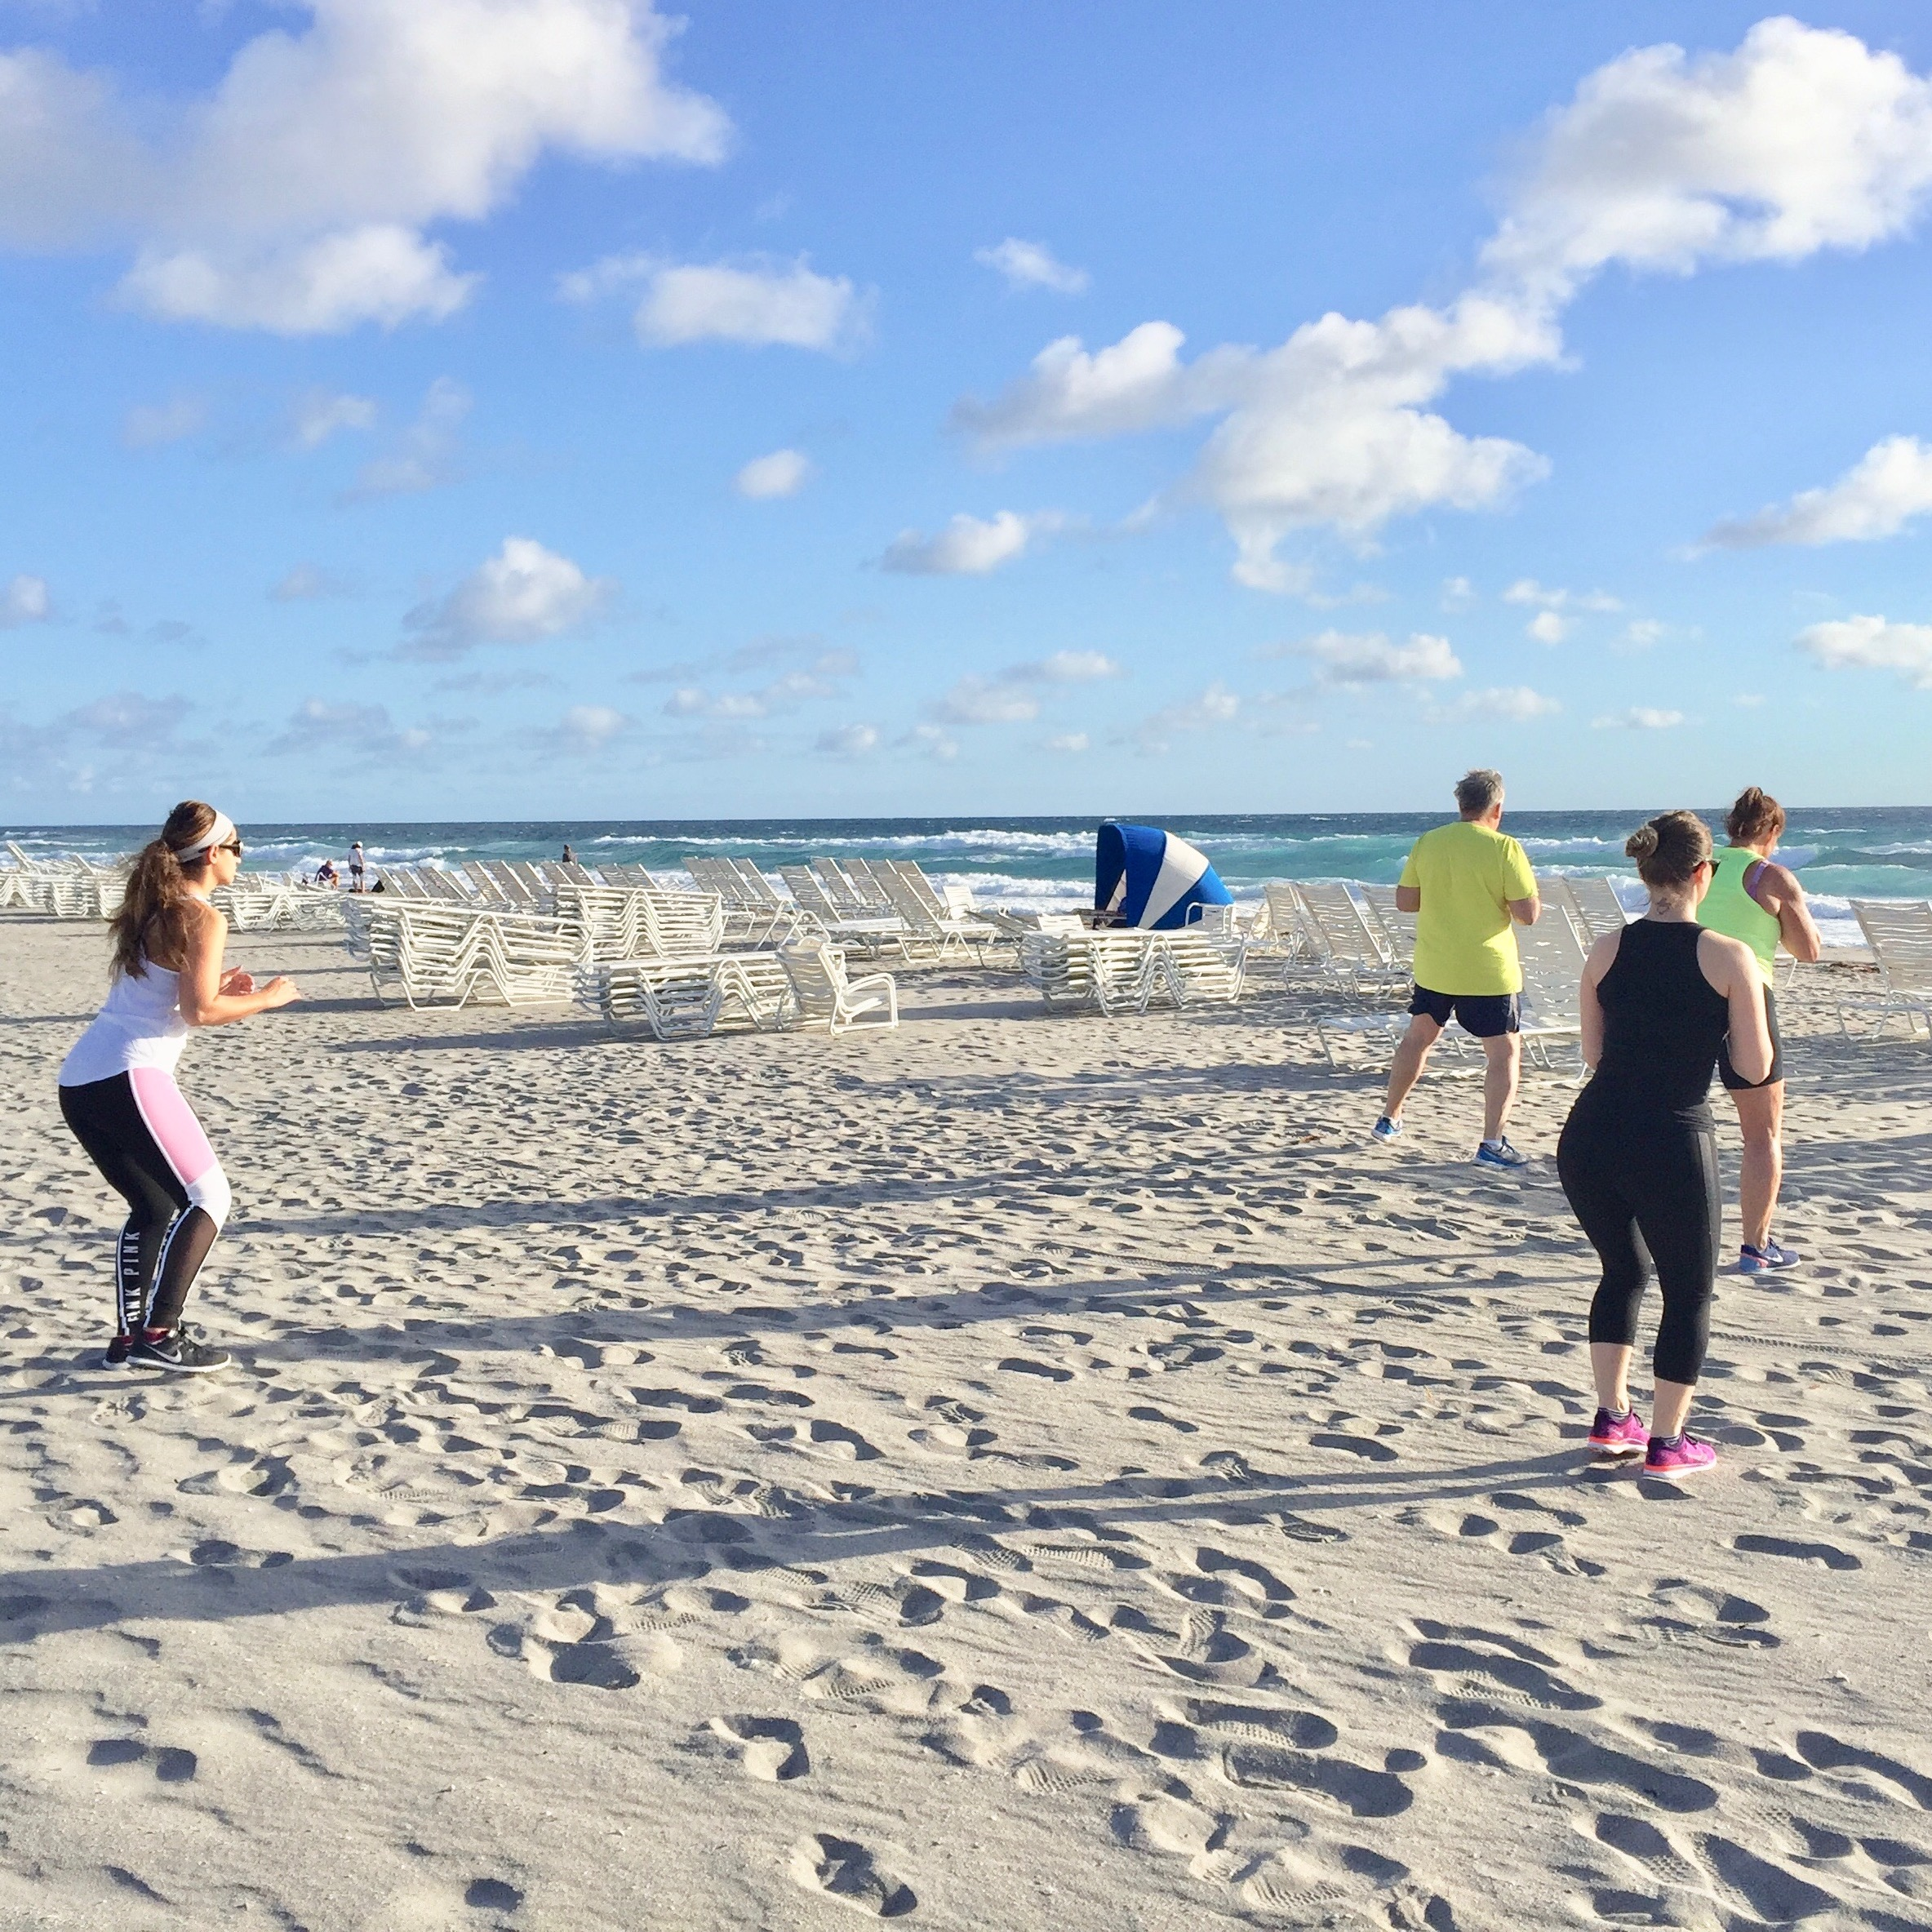 Drill work on the beach during weight loss boot camp class.